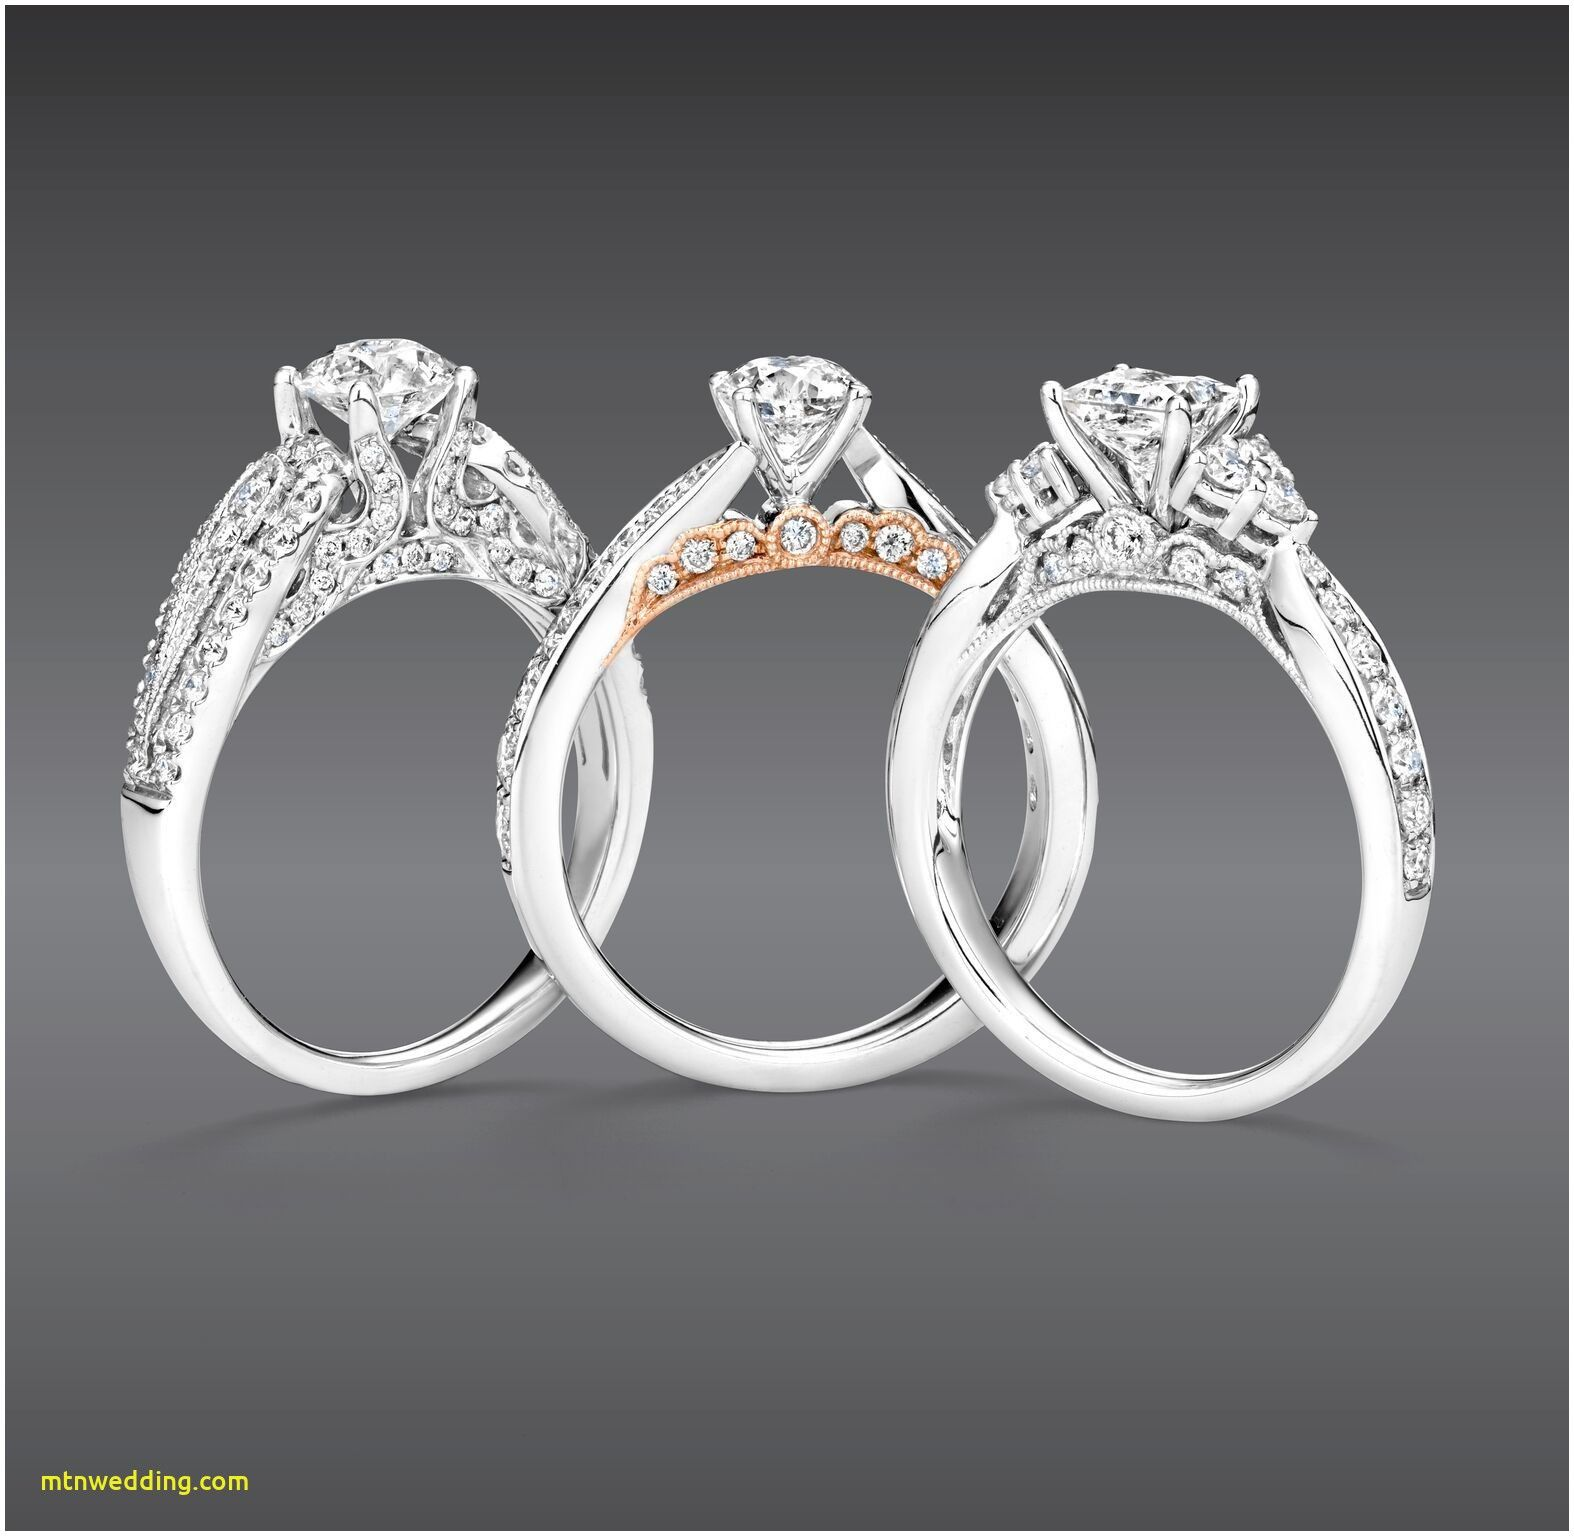 29+ Kays jewelry rose gold rings ideas